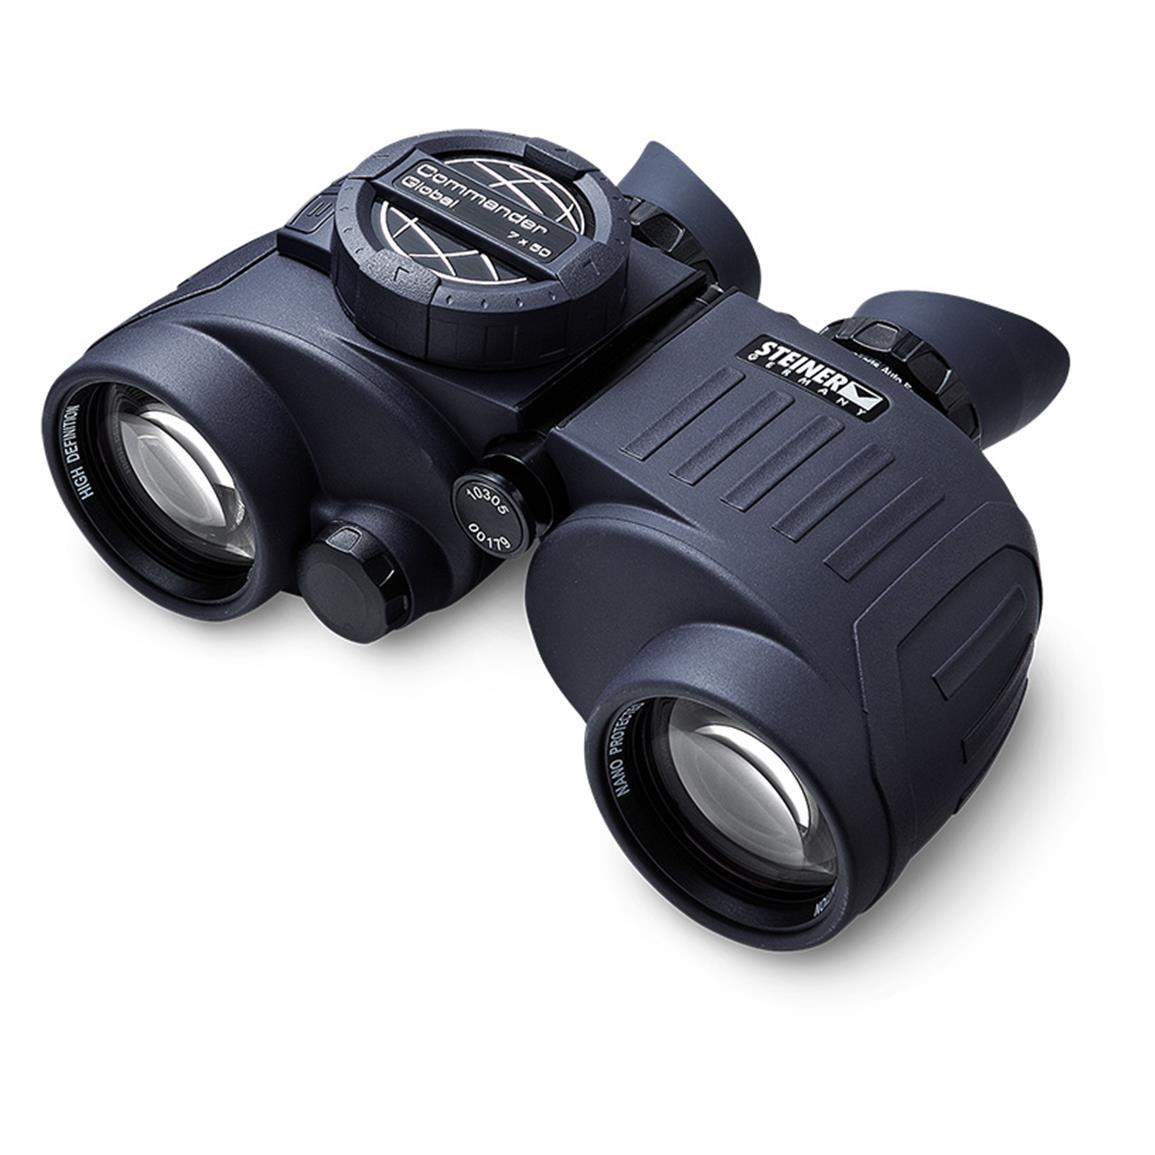 Steiner Commander Global 7x50 Marine Binoculars with Compass